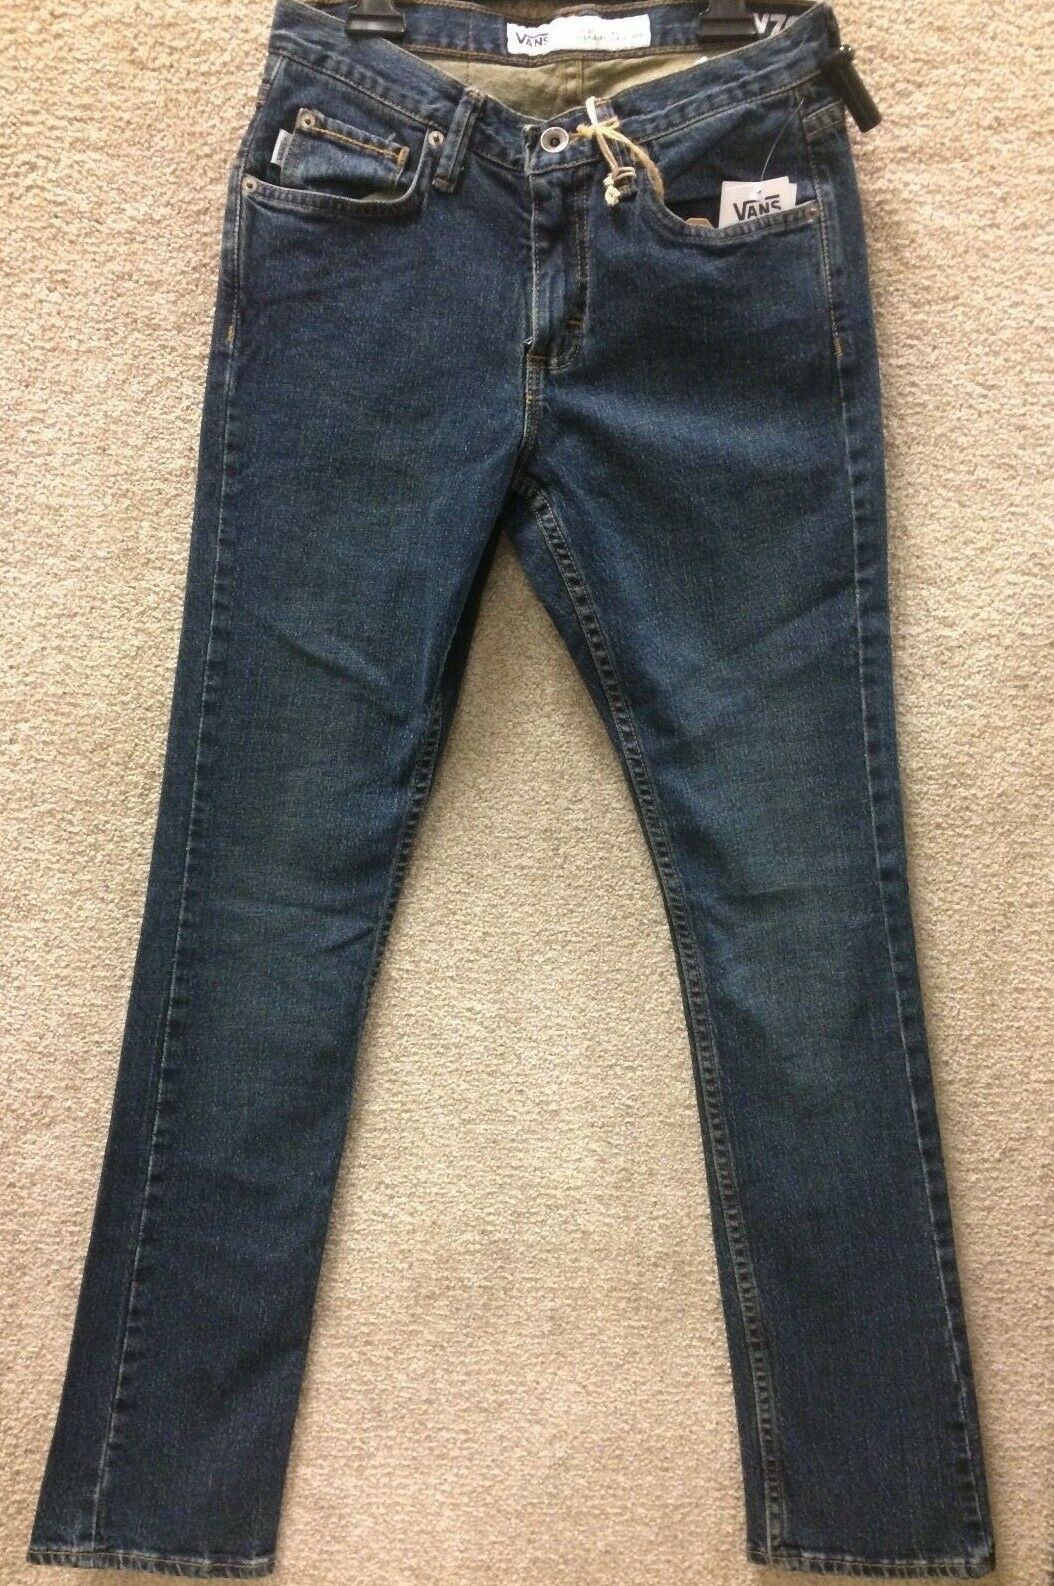 Vans Jeans Pants  V76 SKINNY 2YEAR-VNOOOK4DKMD-  color 591